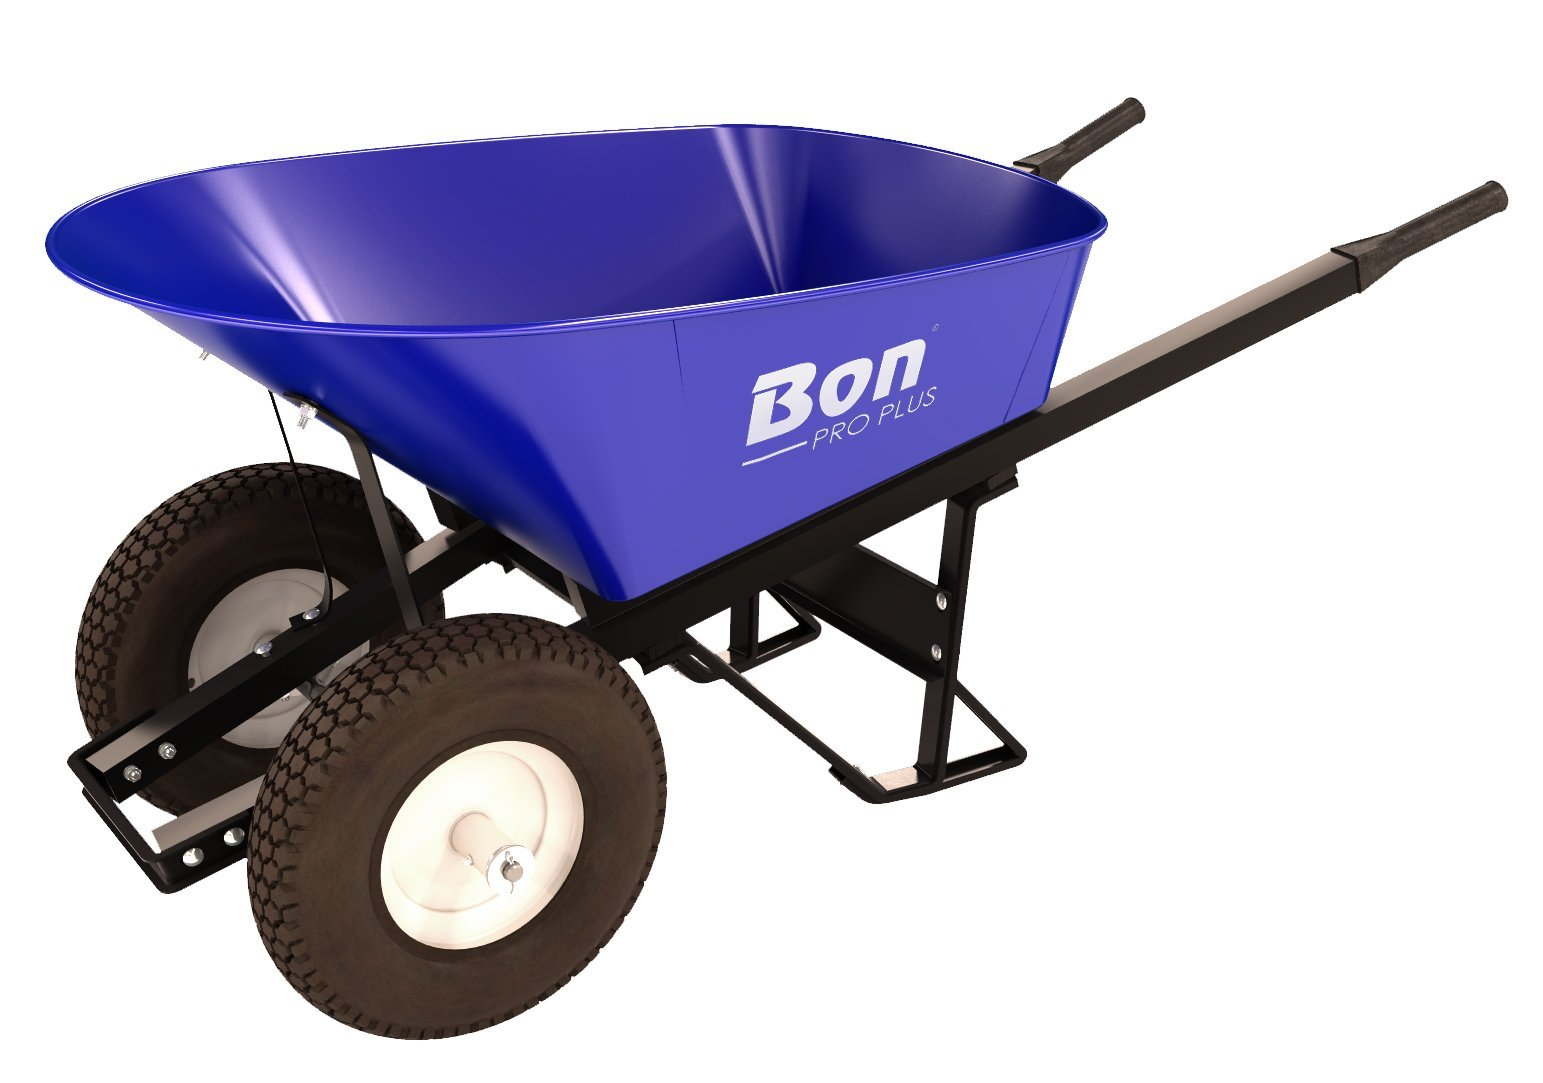 Bon 28 901 Premium Contractor Grade Steel Double Wheel Wheelbarrow with Steel Hande and Knobby Tire, 6 Cubic Feet